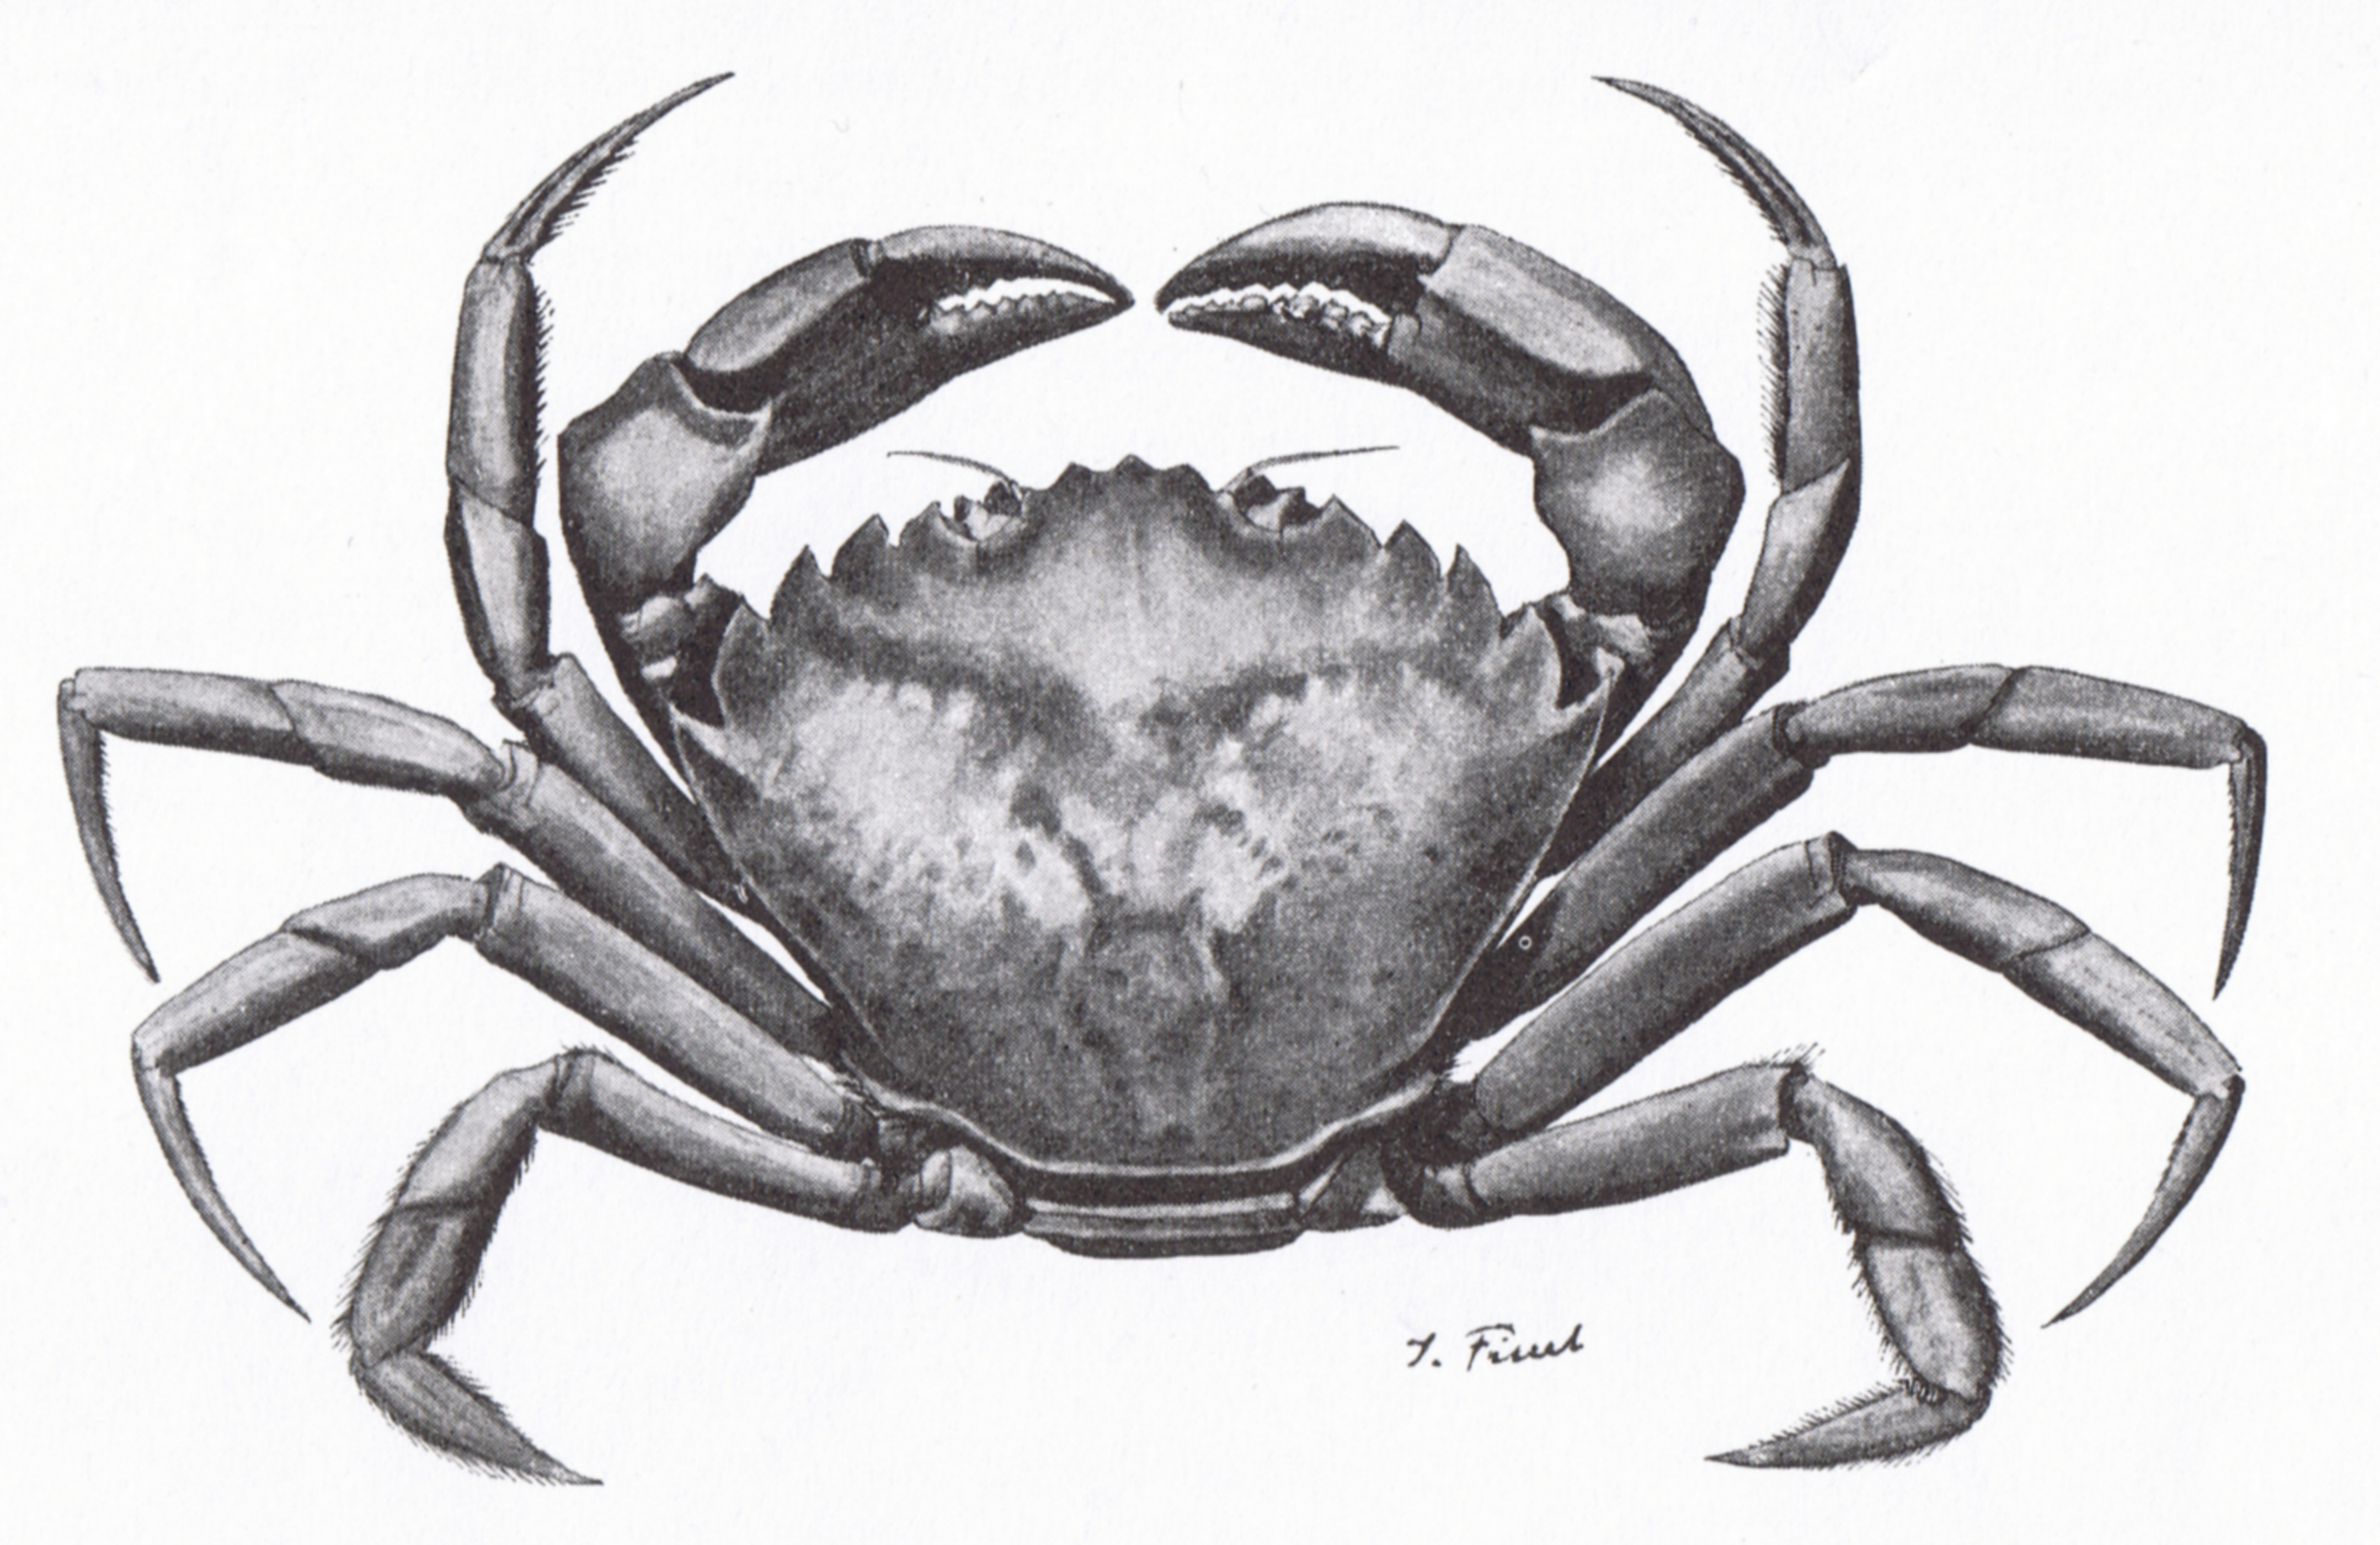 carcinus maenas  definition of carcinus maenas and